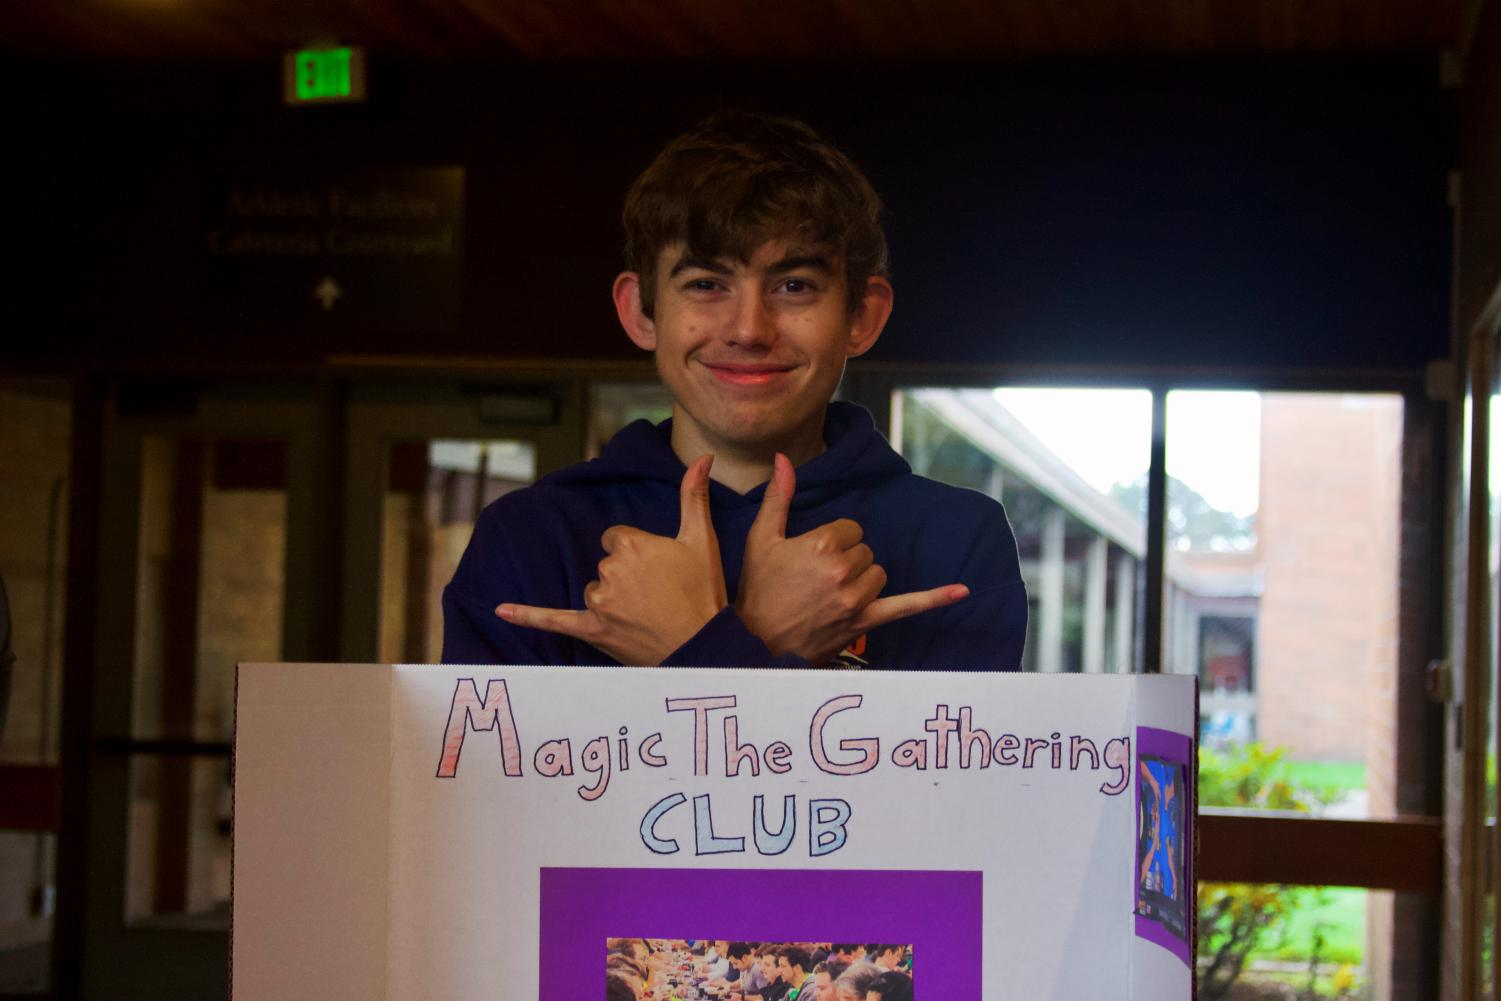 Senior+Sam+Meyer+representing+his+new+Magic+the+Gathering+Club.